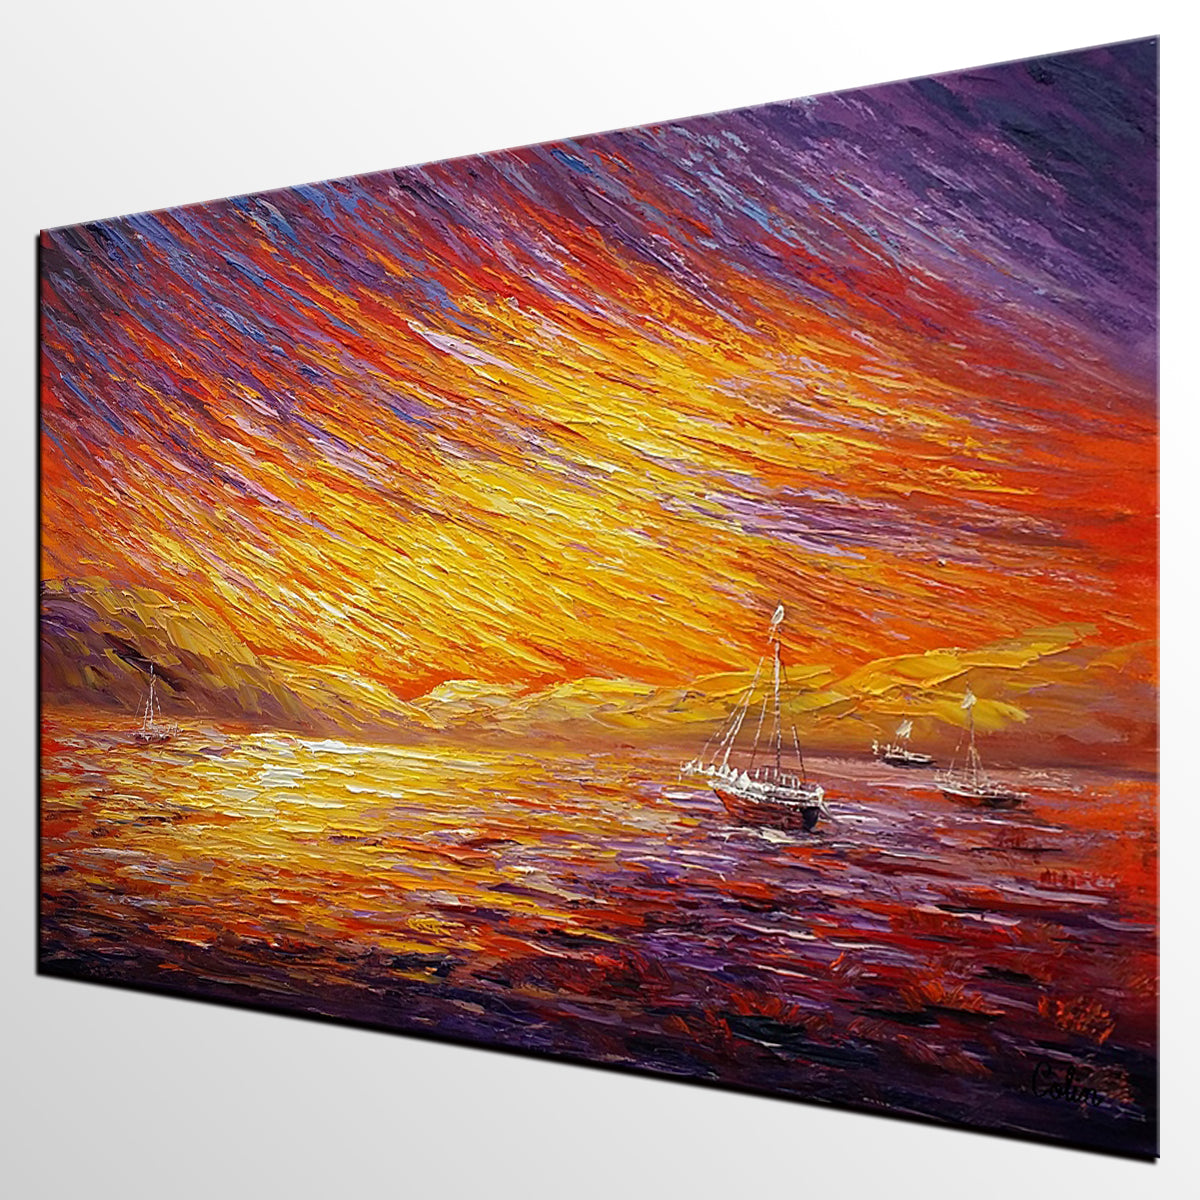 Canvas Art, Original Wall Art, Landscape Painting, Large Art, Abstract Art, Wall Art, Original Artwork, Canvas Painting, Oil Painting 214